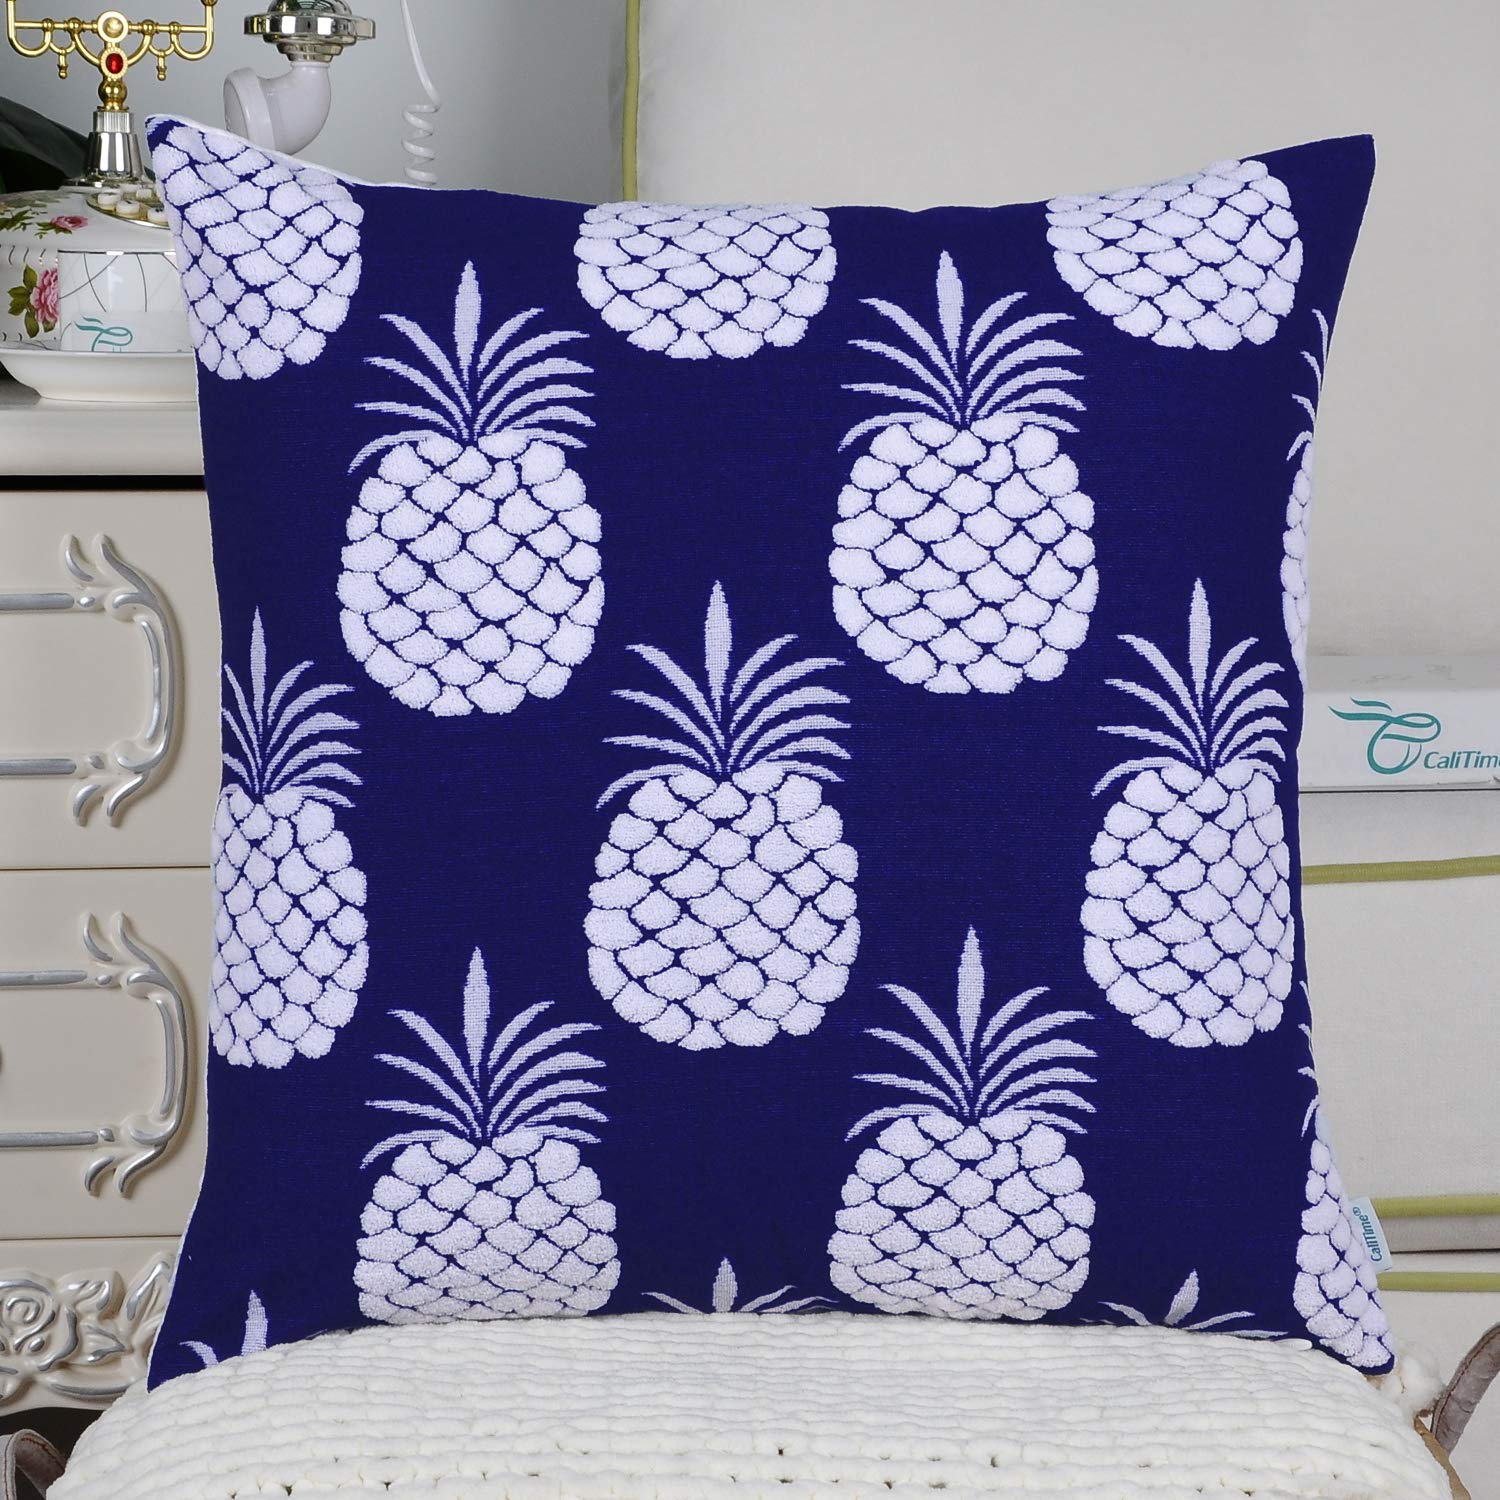 CaliTime Pack of 2 Supersoft Throw Pillow Covers Cases for Couch Sofa Bed Bedding Fluffy White Pineapple Fruit 18 X 18 Inches Wheat Qingdao PT Trading Co Ltd DSC0397A-Double